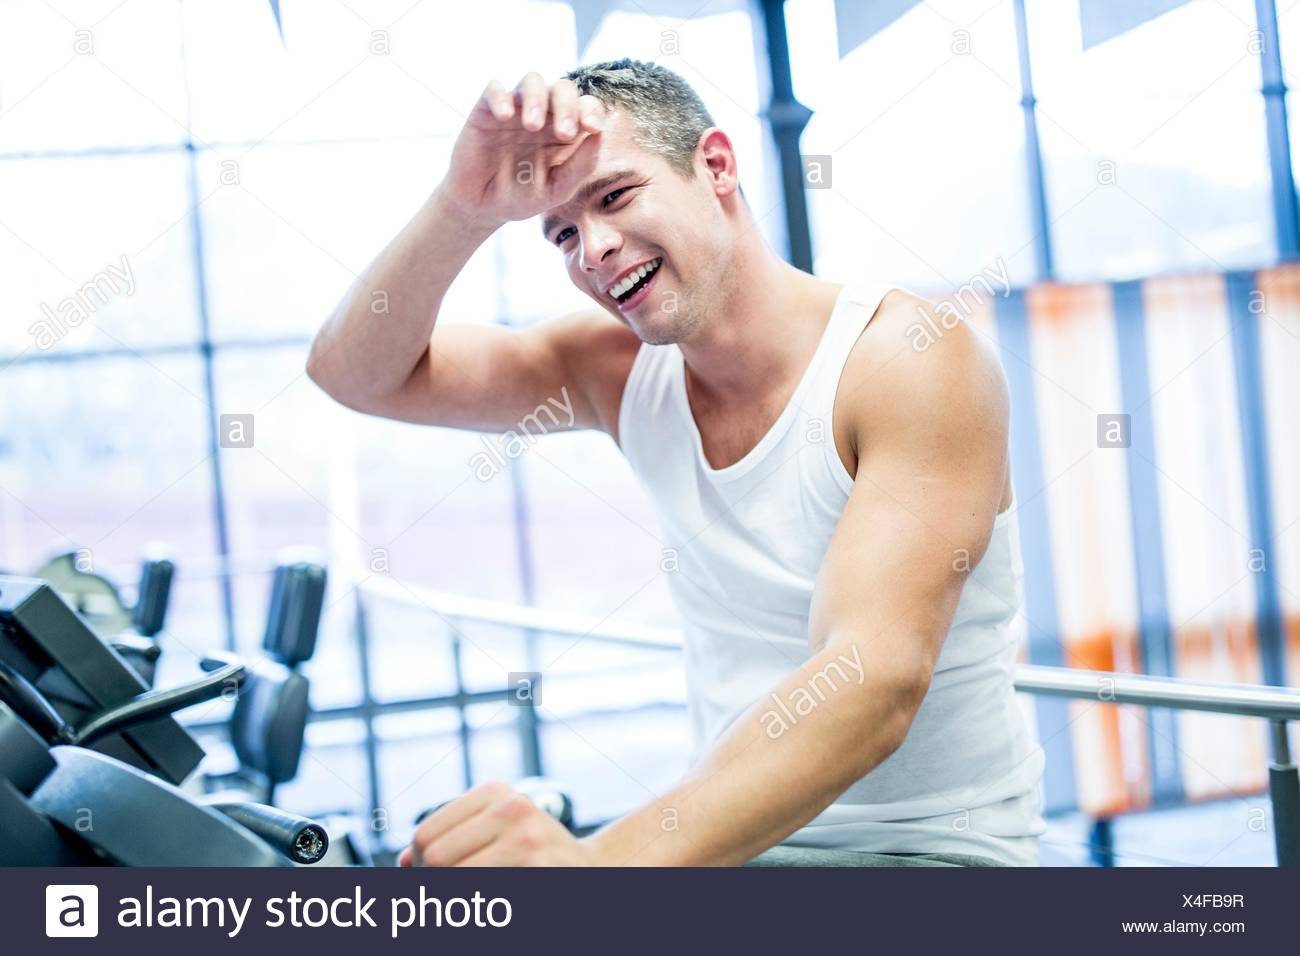 PROPERTY RELEASED. MODEL RELEASED. Young man sweating while exercising in gym, smiling. - Stock Image